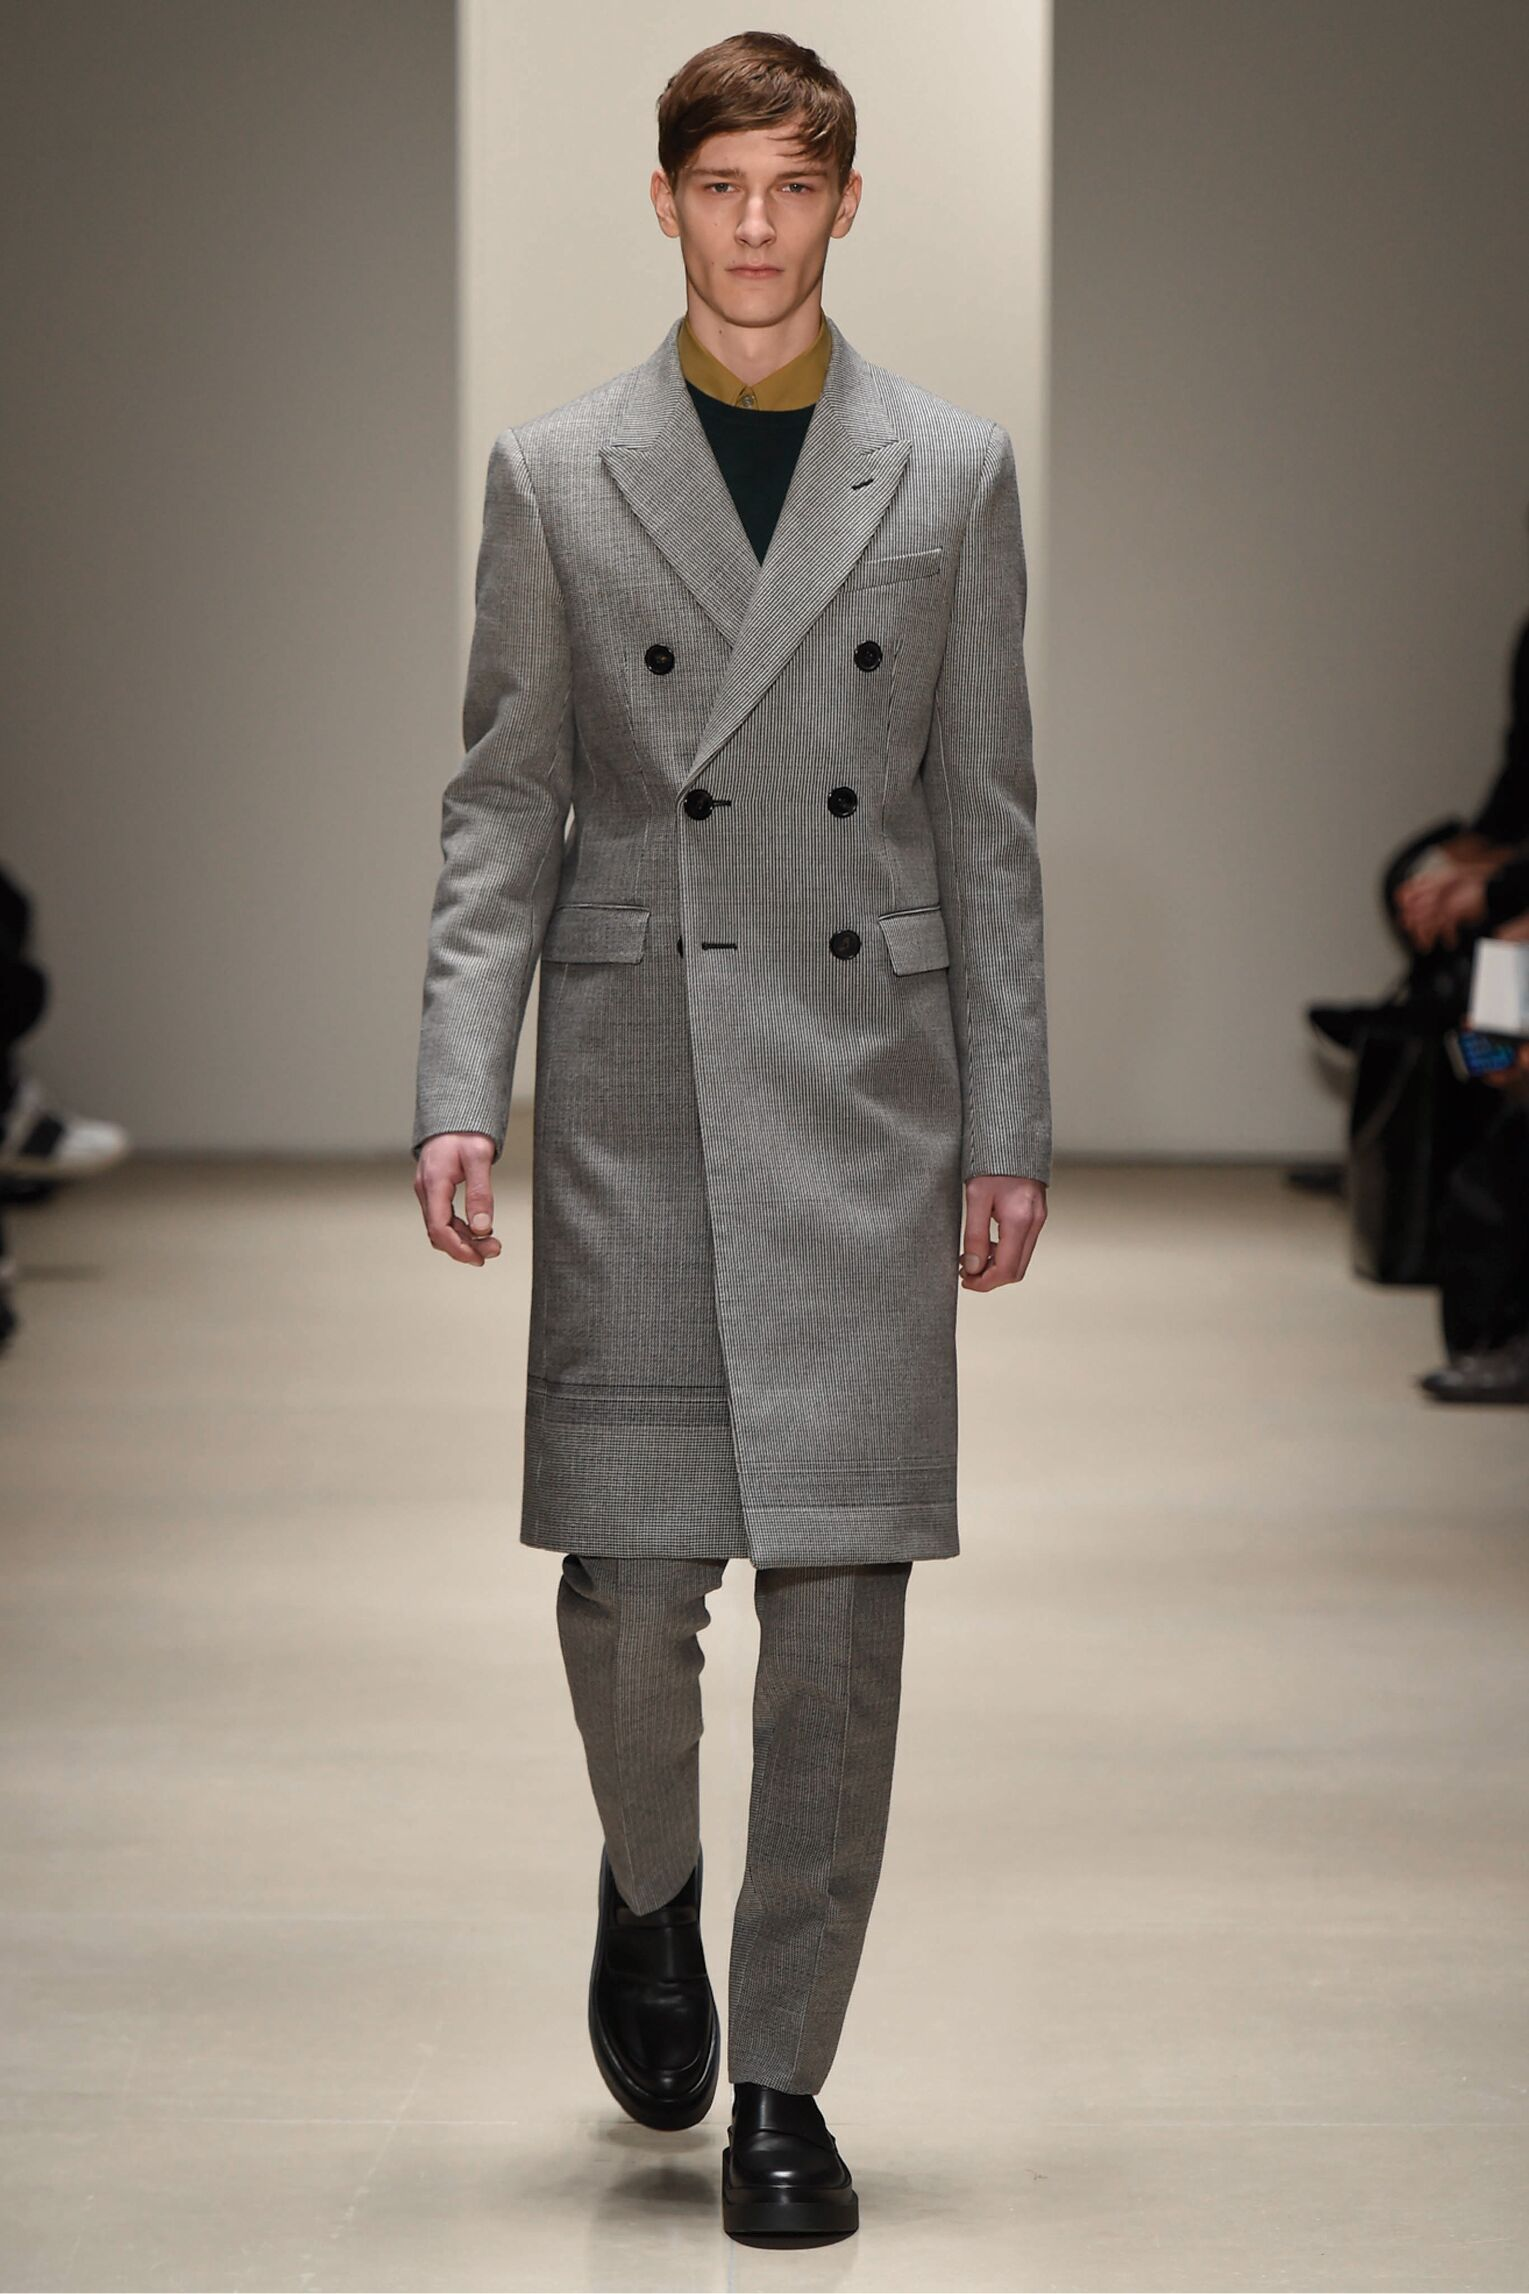 Fashion Winter Trends 2015 2016 Jil Sander